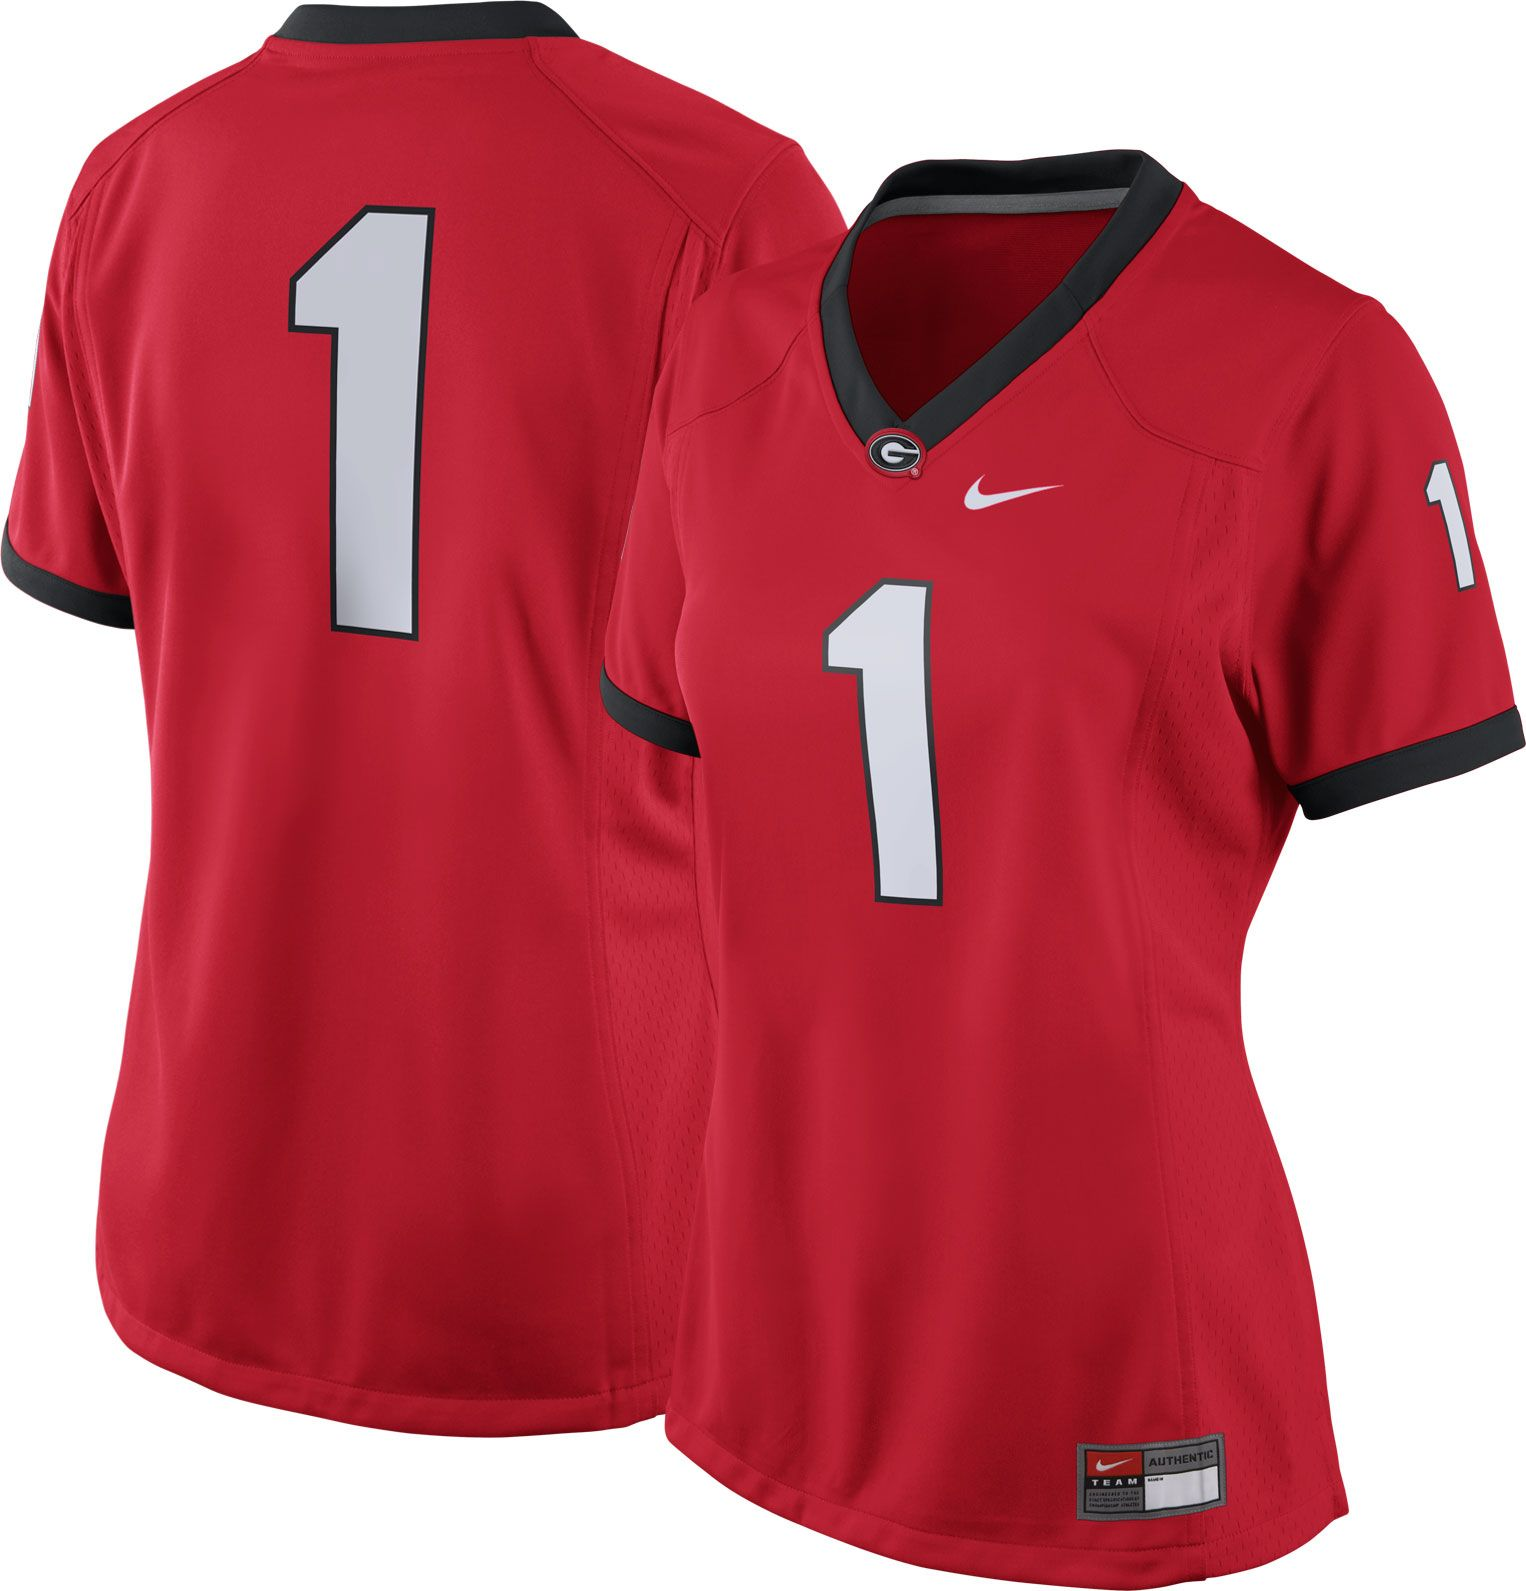 women's georgia bulldog jersey